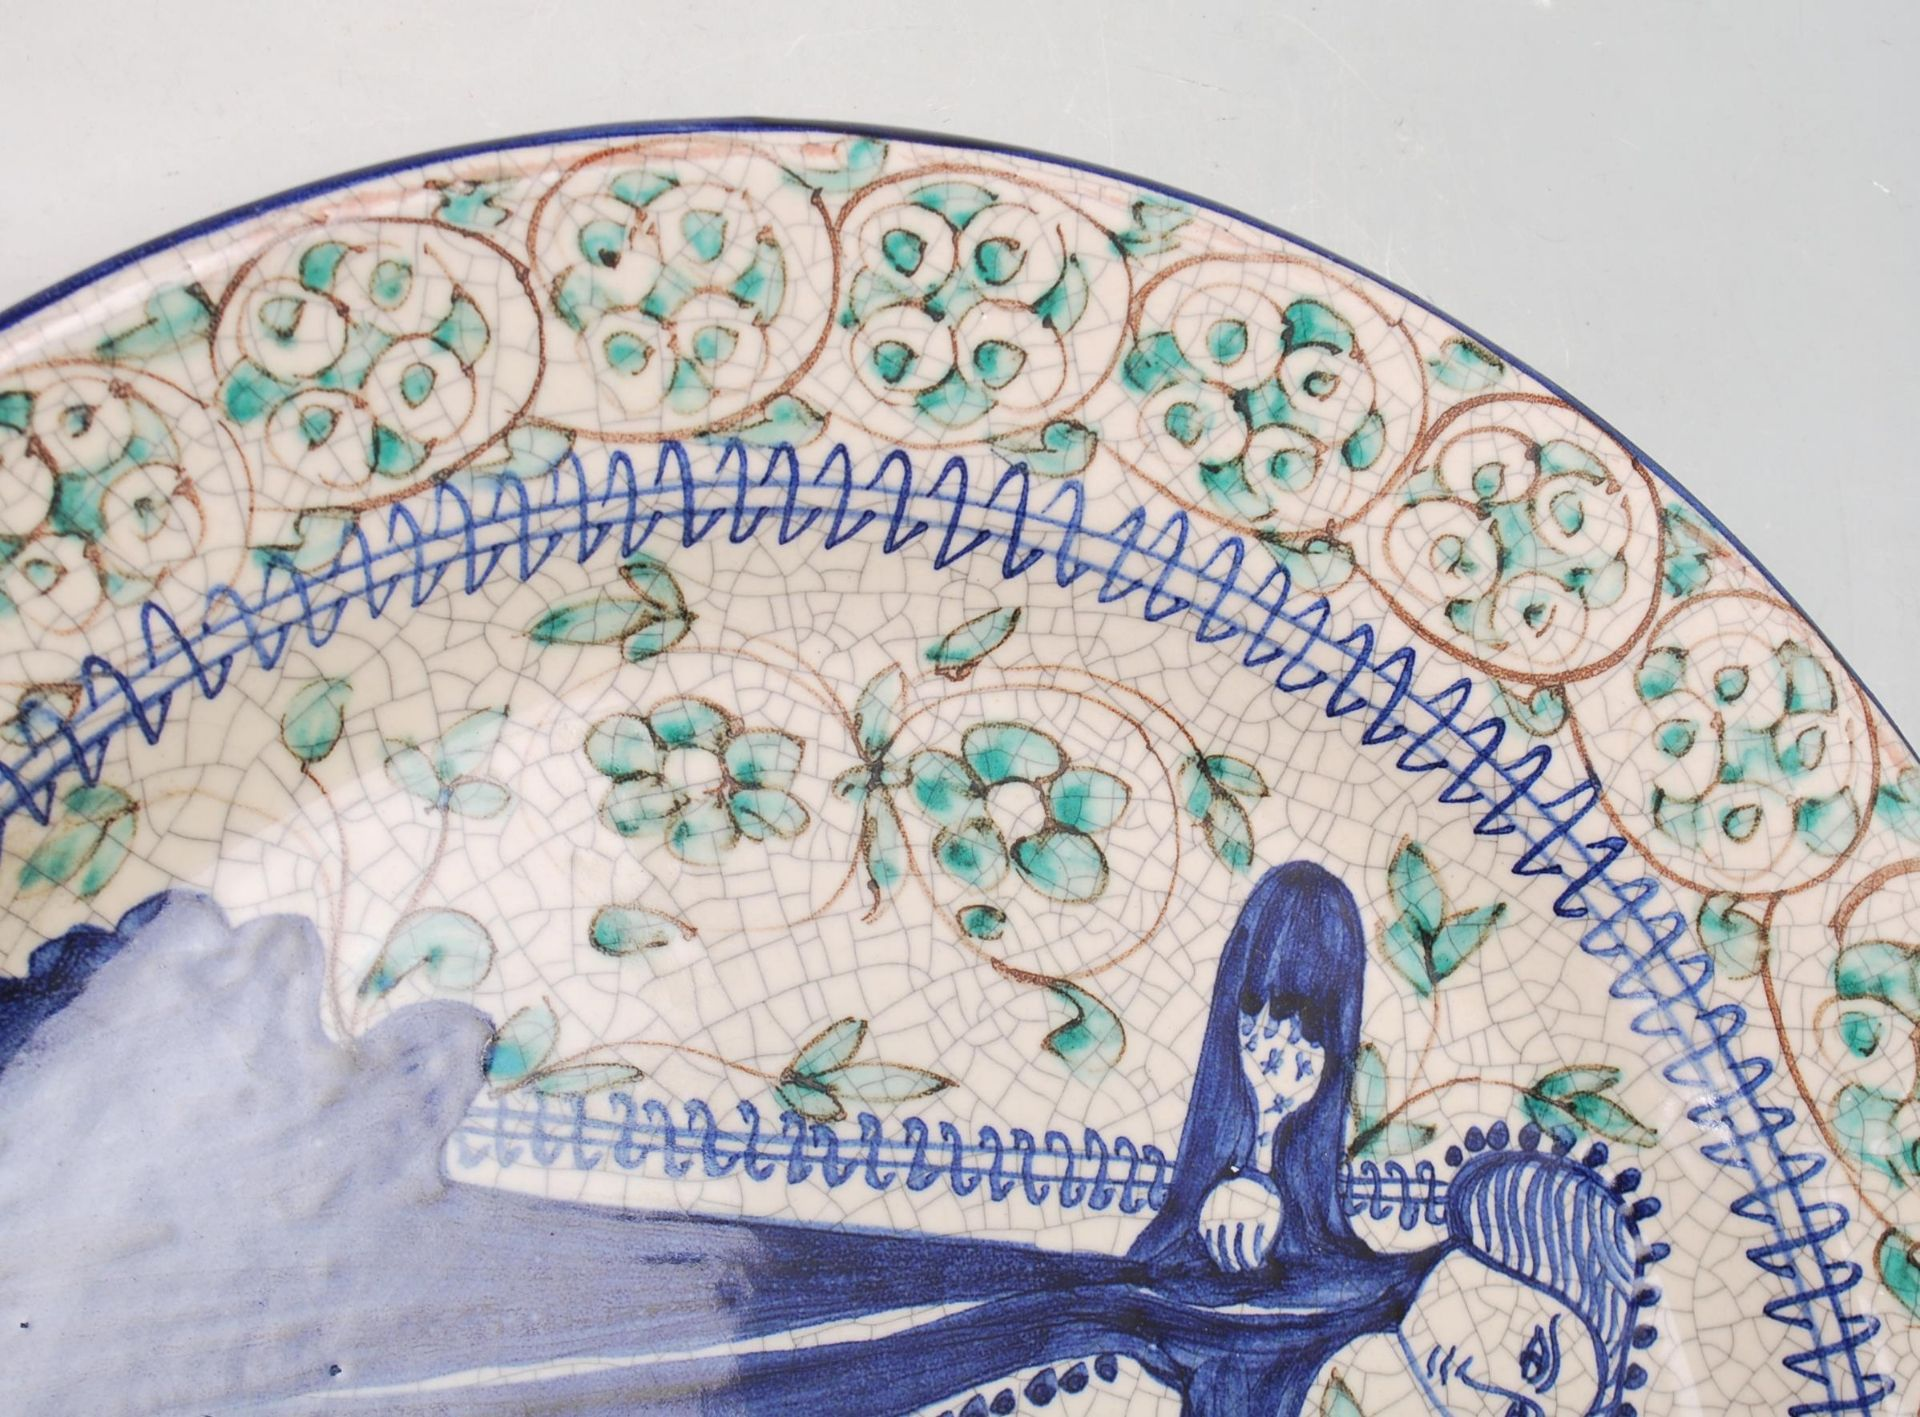 LATE 20TH CENTURY PERSIAN ISLAMIC FAIENCE CHARGER - Image 5 of 7